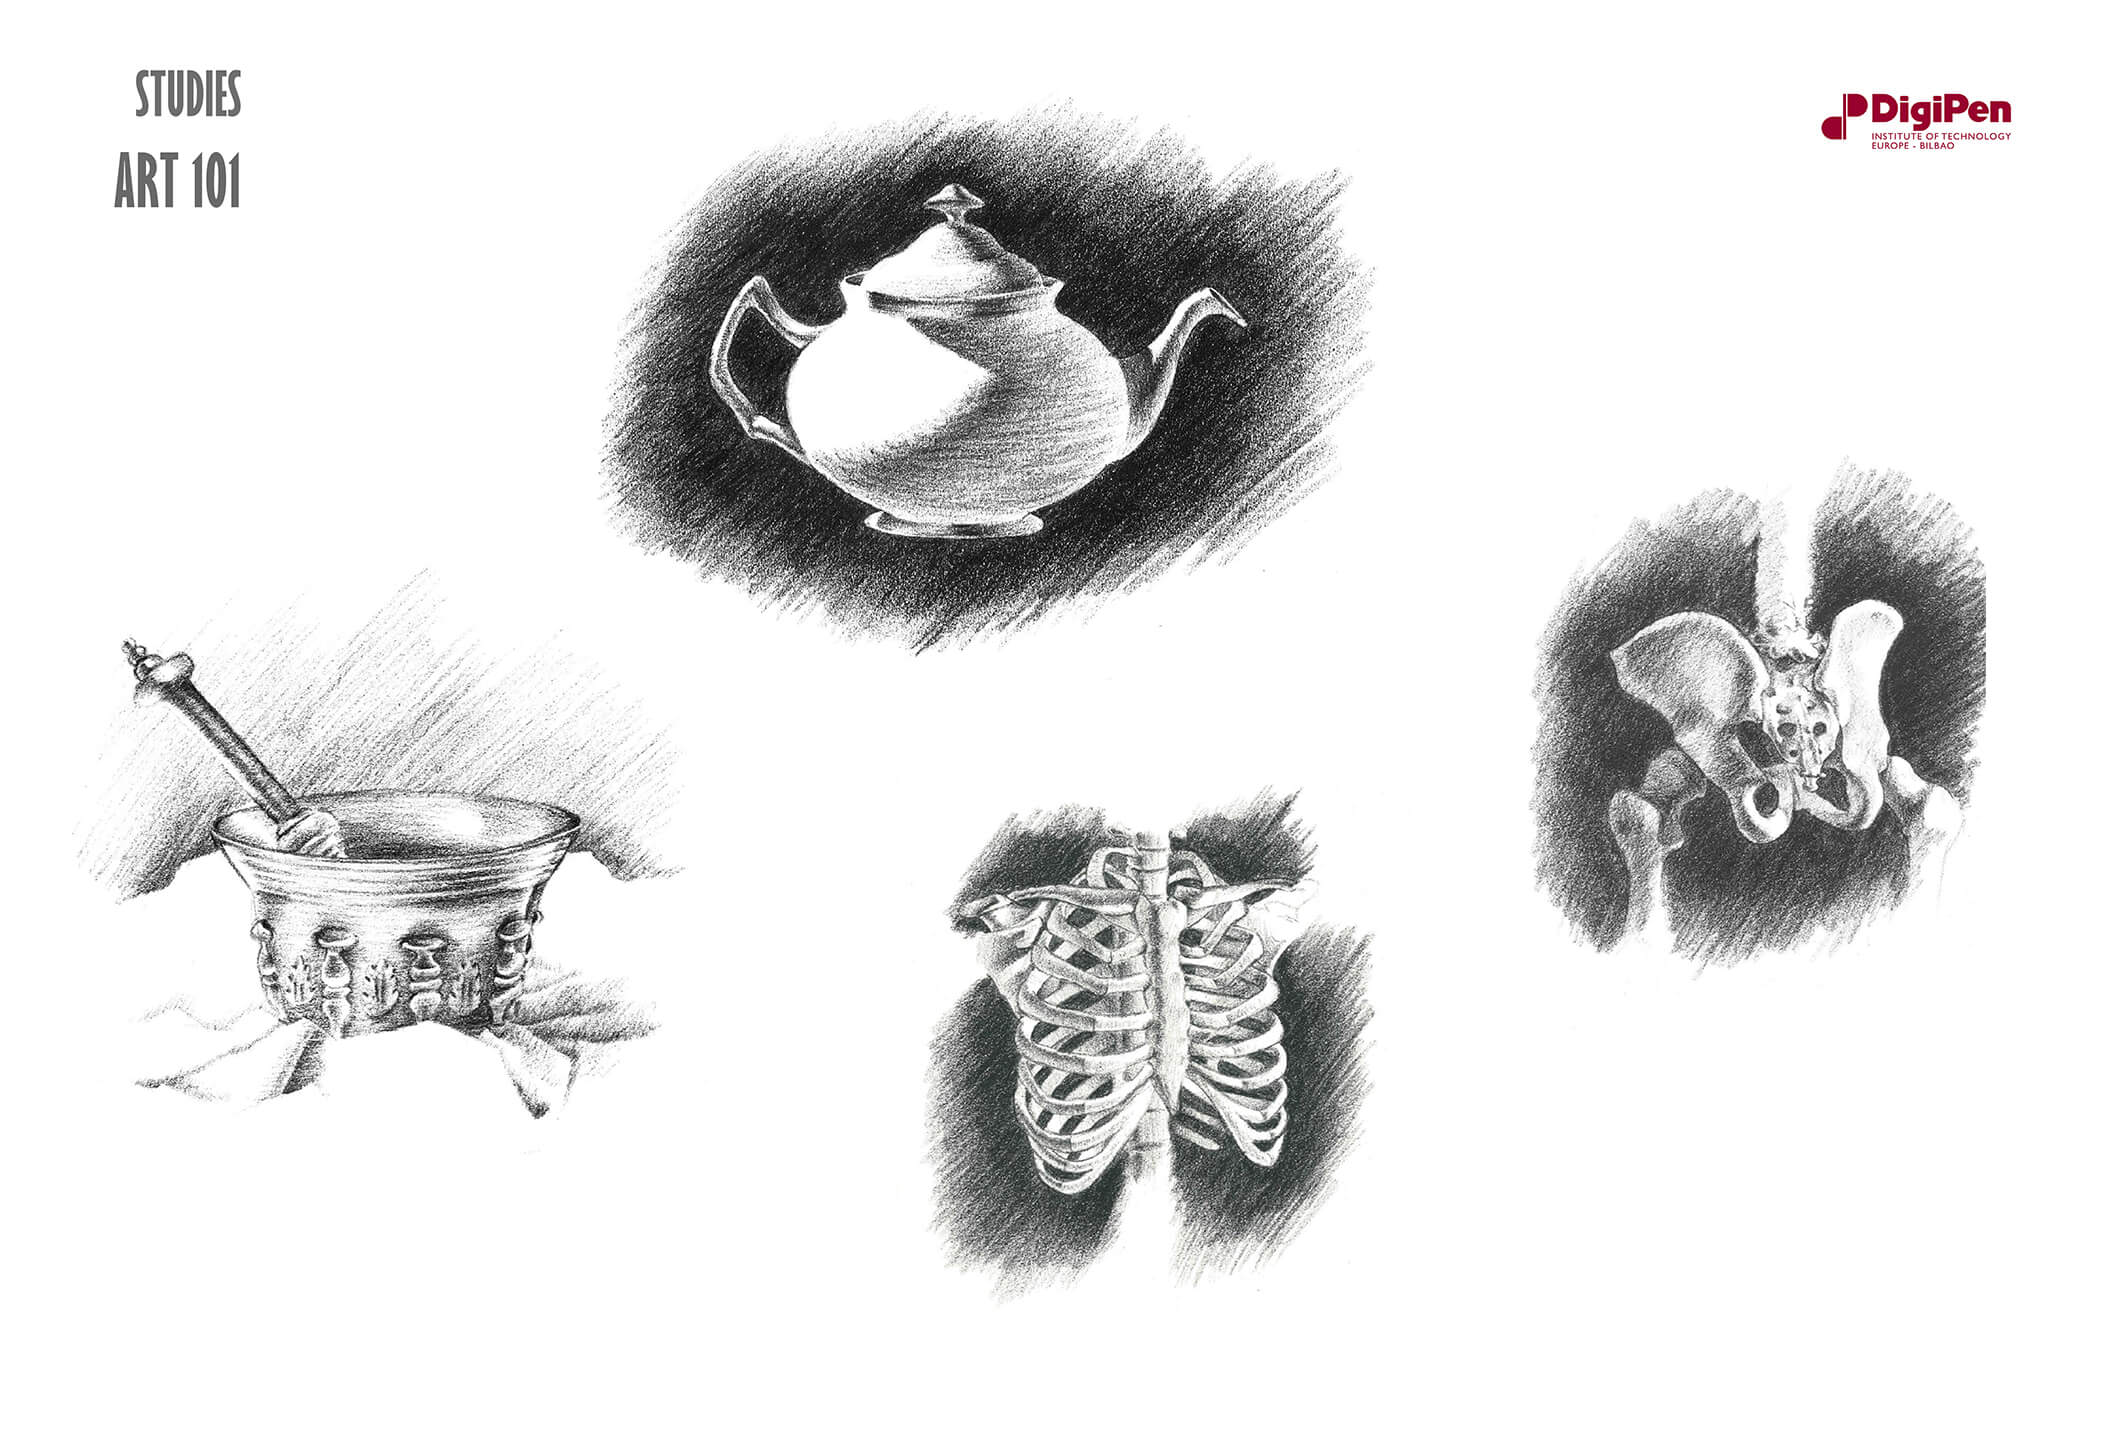 Black-and-white sketches of a teapot, chalice, human ribcage and pelvic bone.